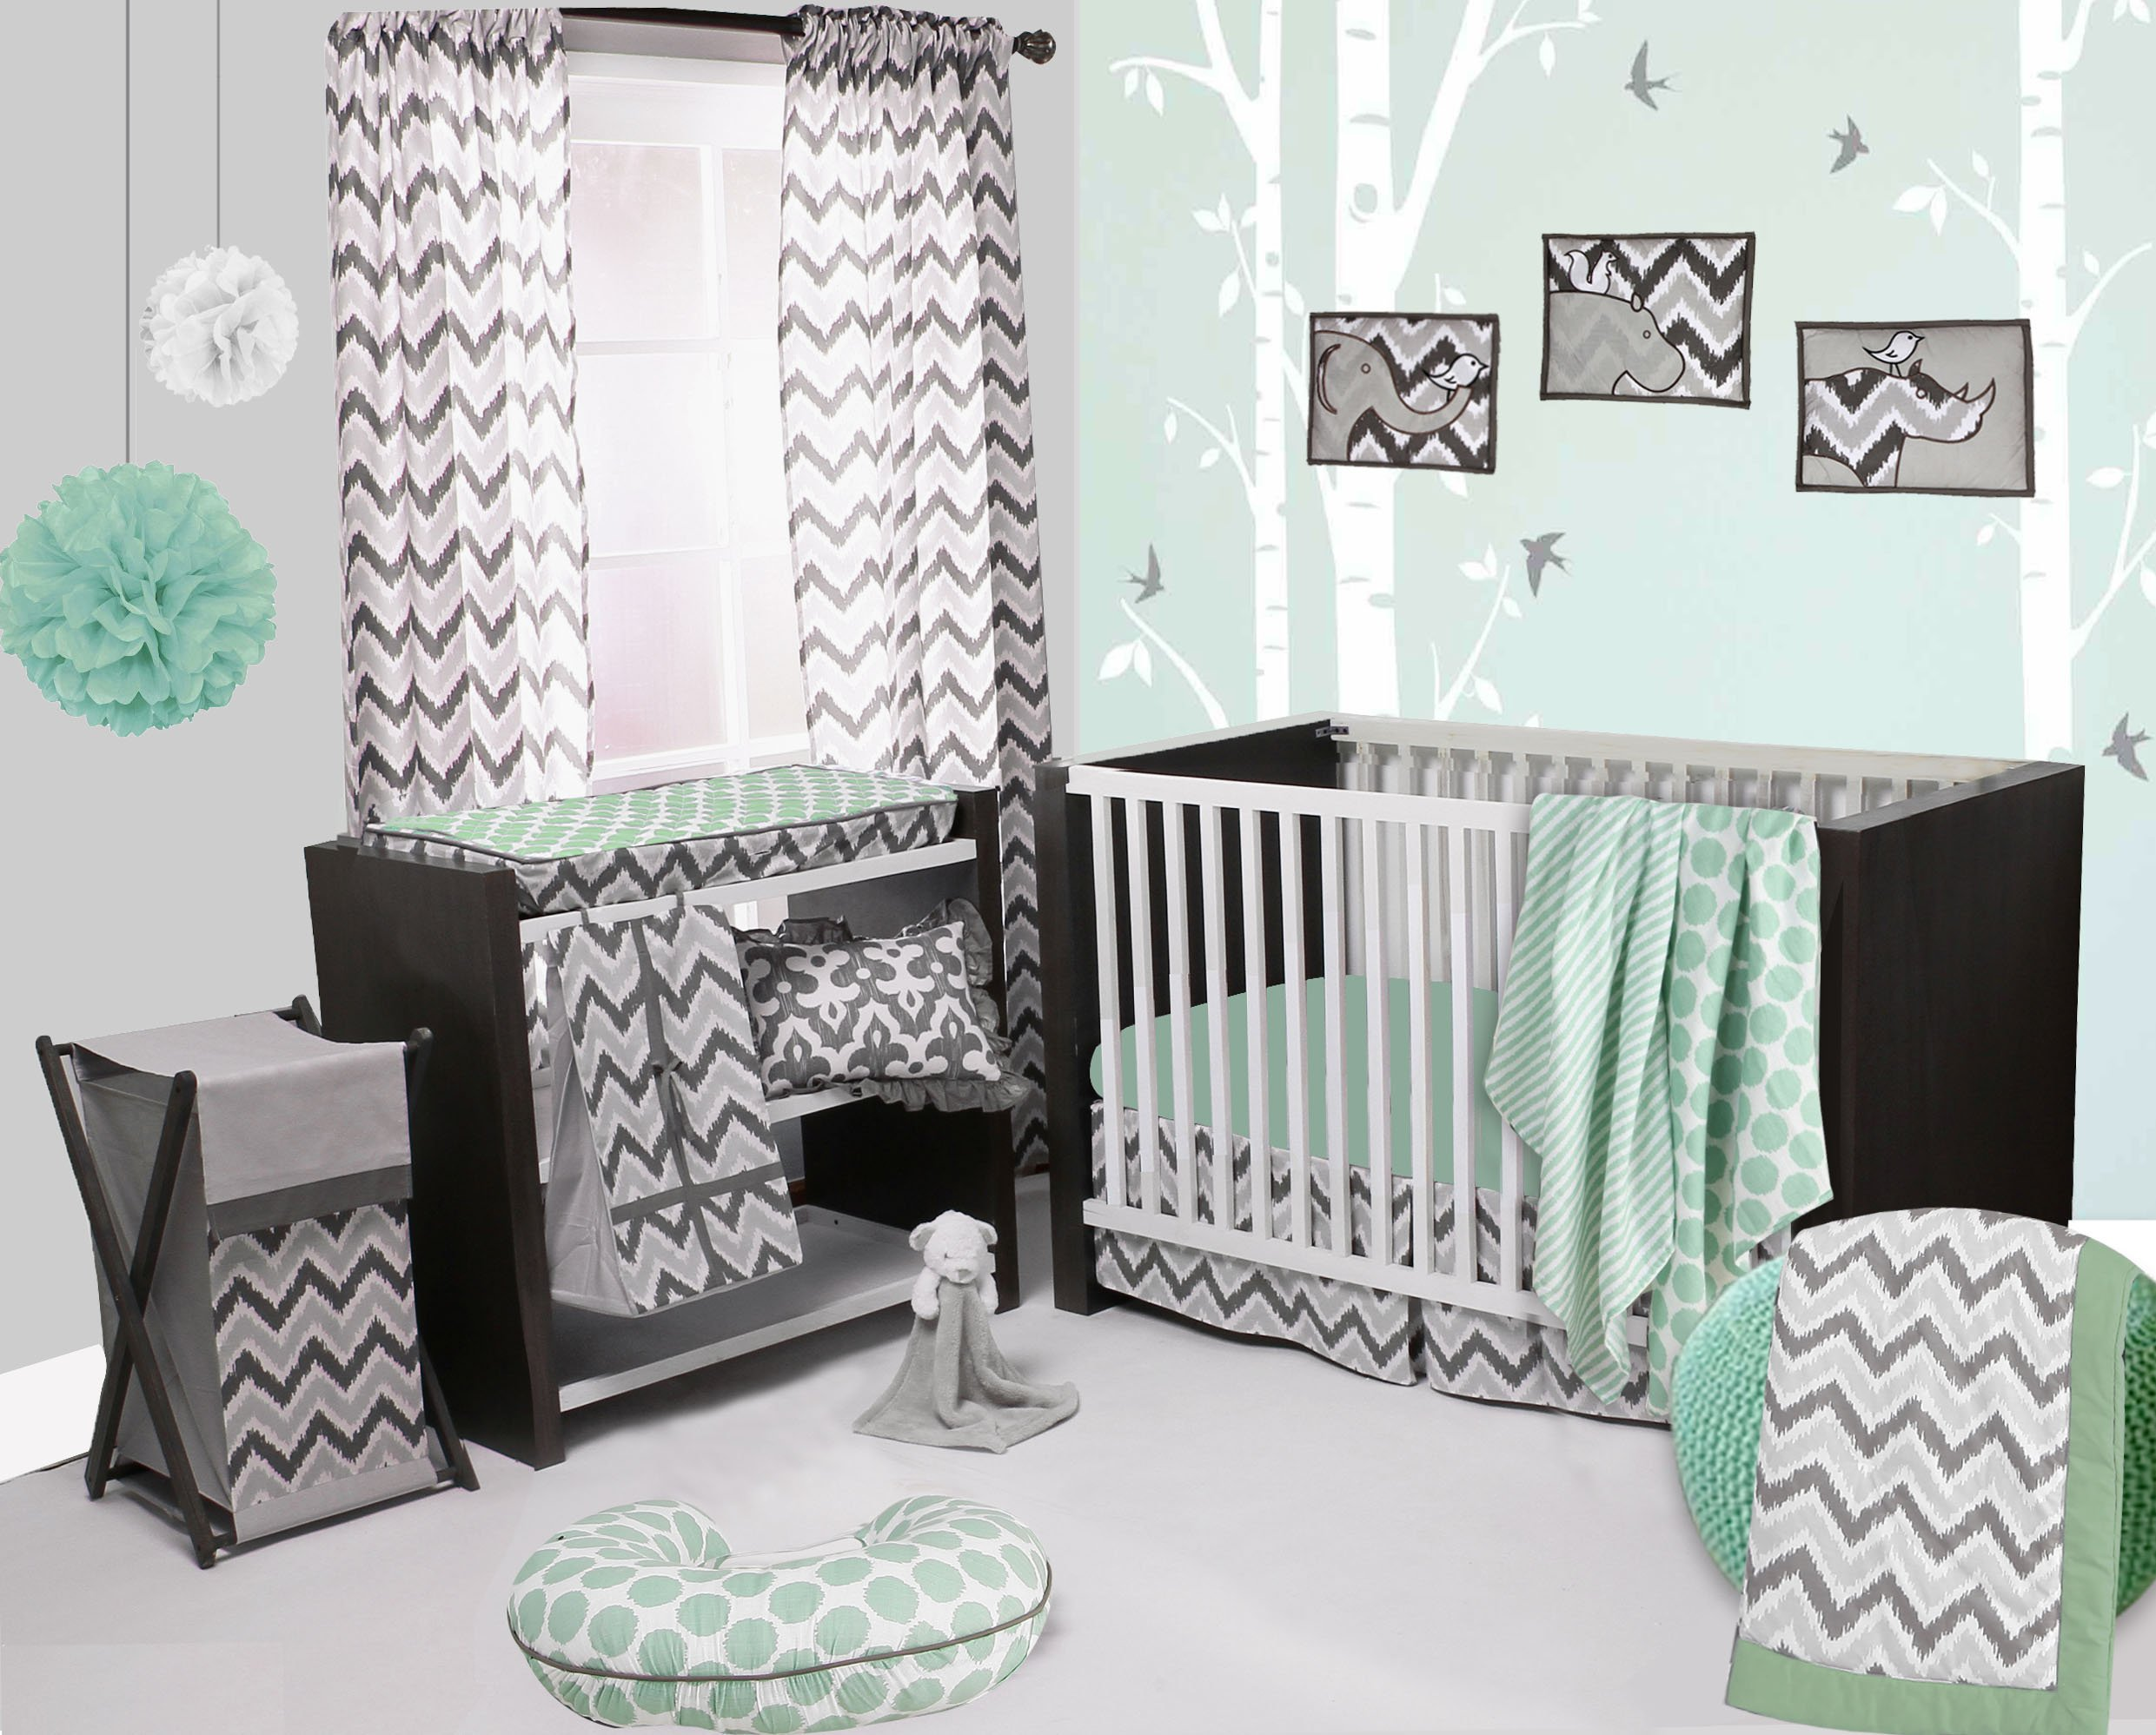 Bacati Ikat Mint/grey Dots/stripes 4 Crib Set with 2 Muslin Blankets